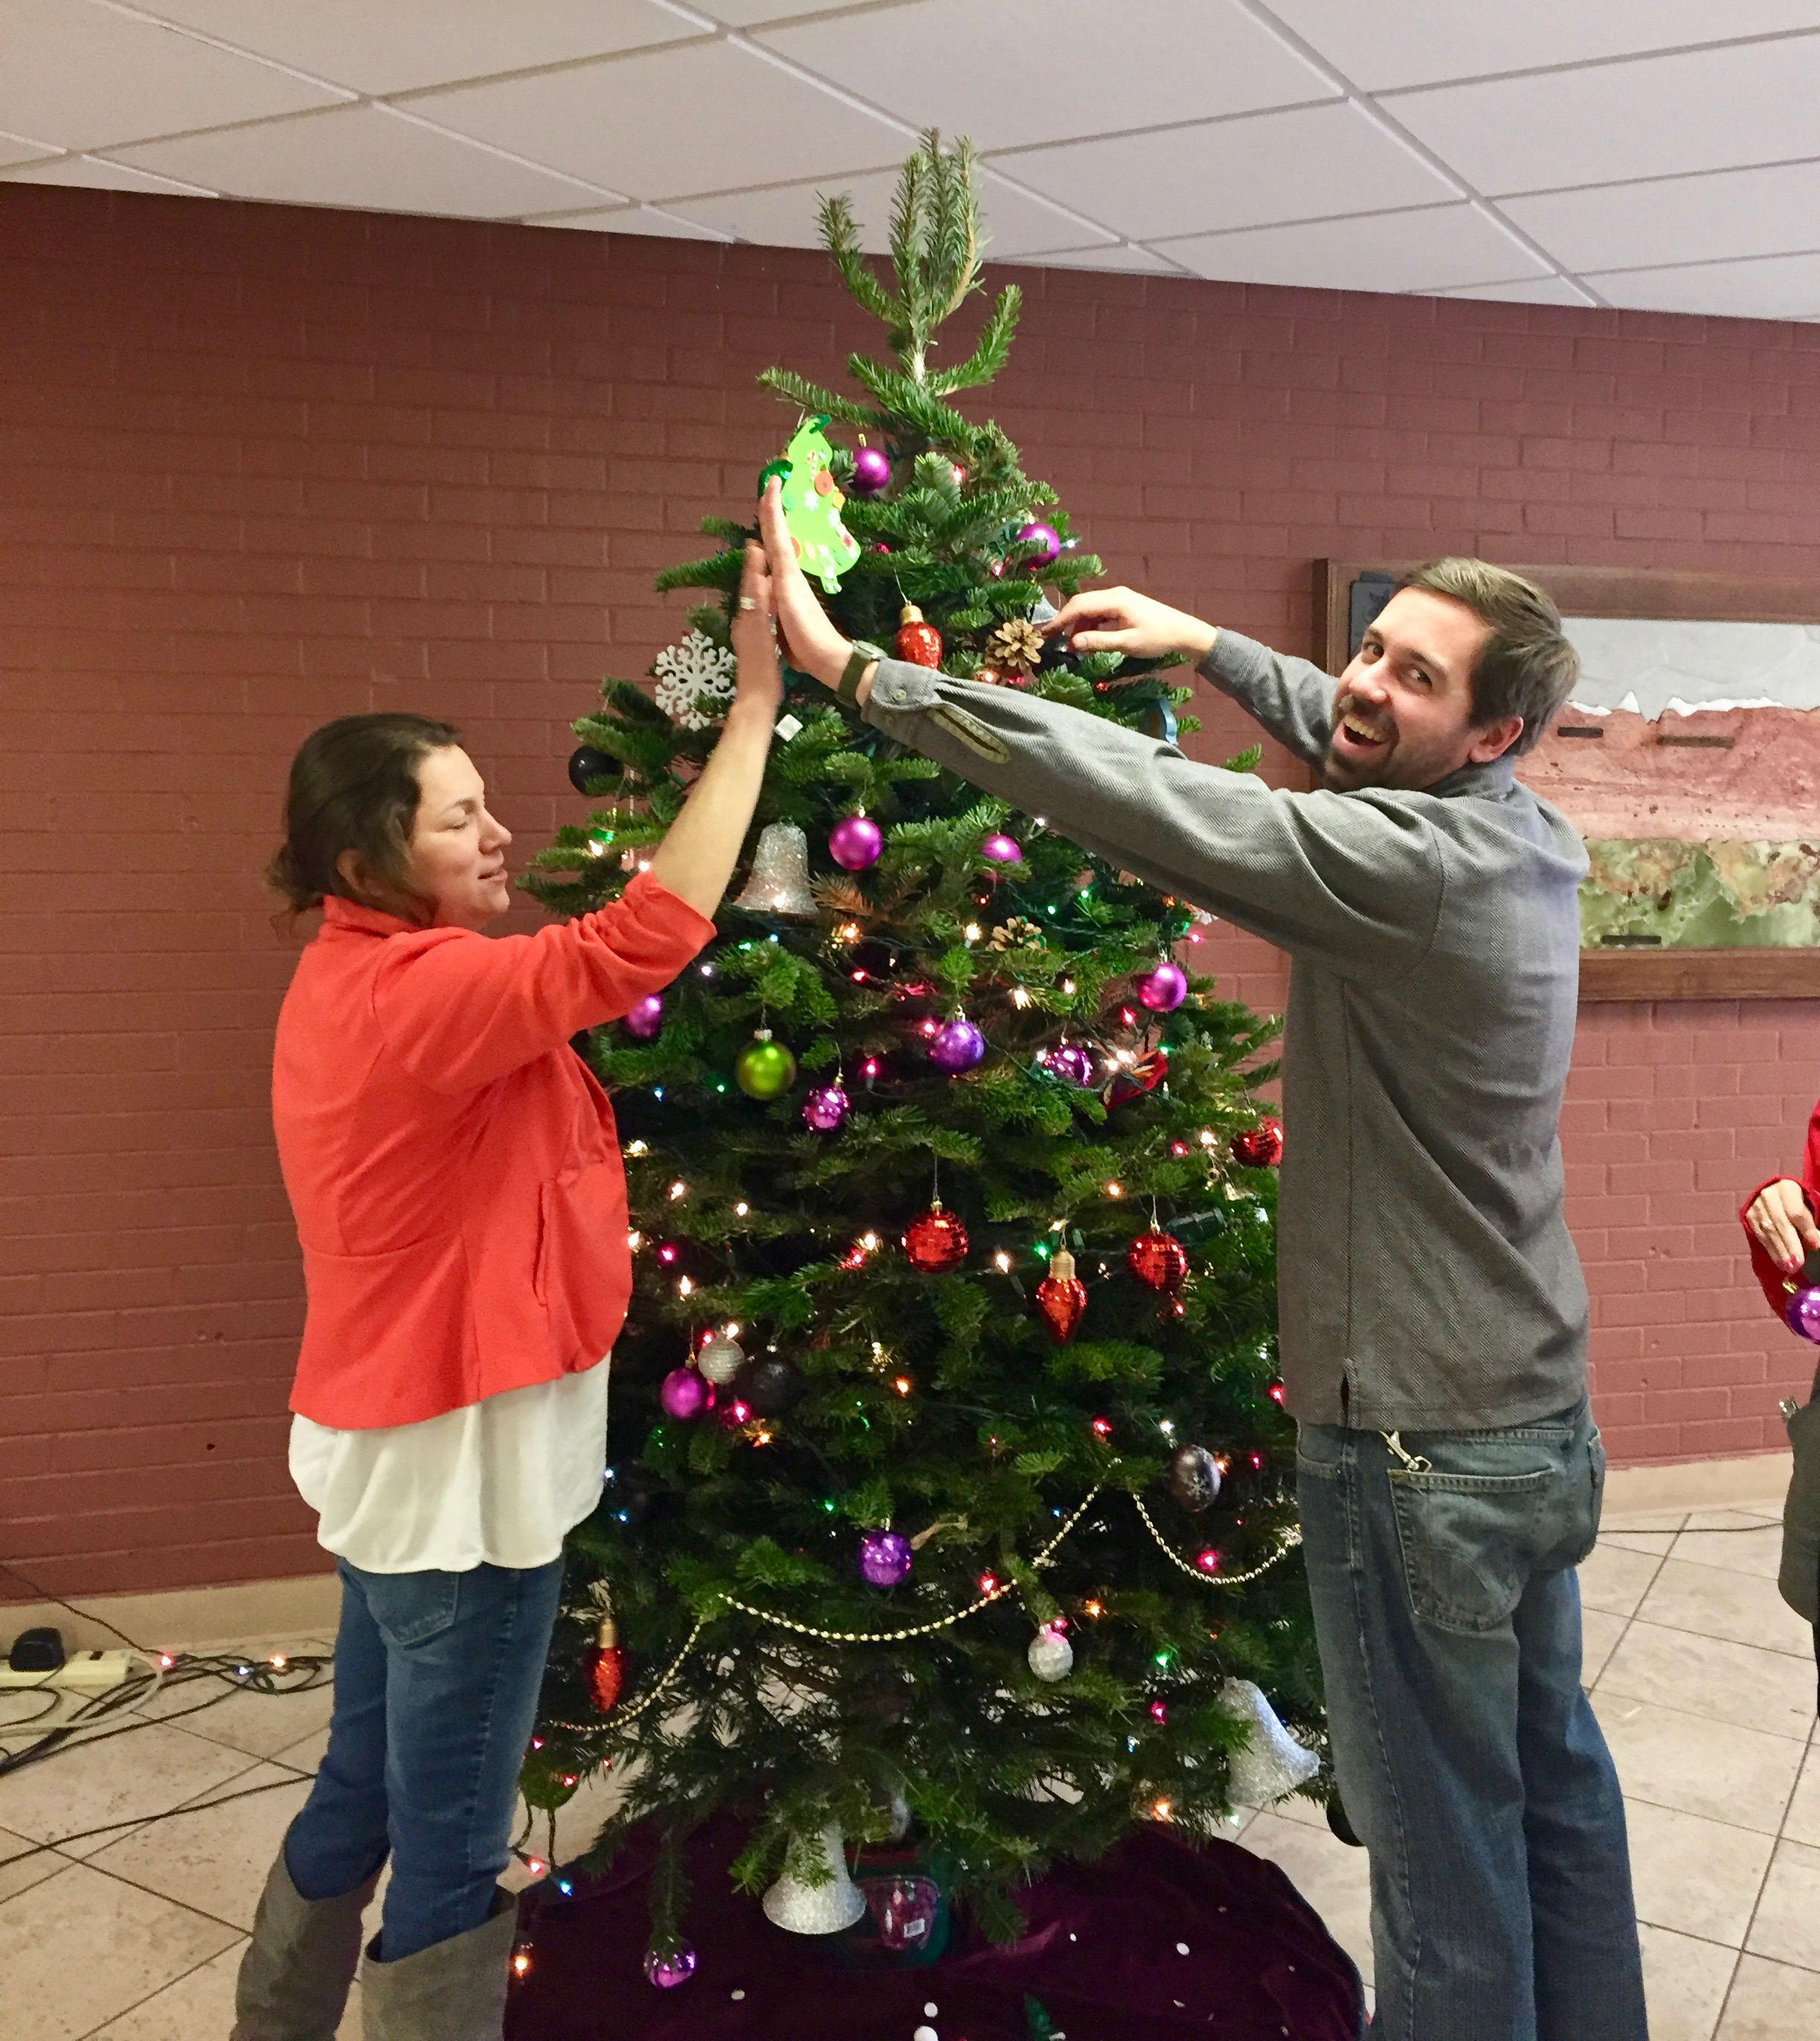 Shop Instructor Chris and Home Management Instructor Delfina high fiving in front of the tree